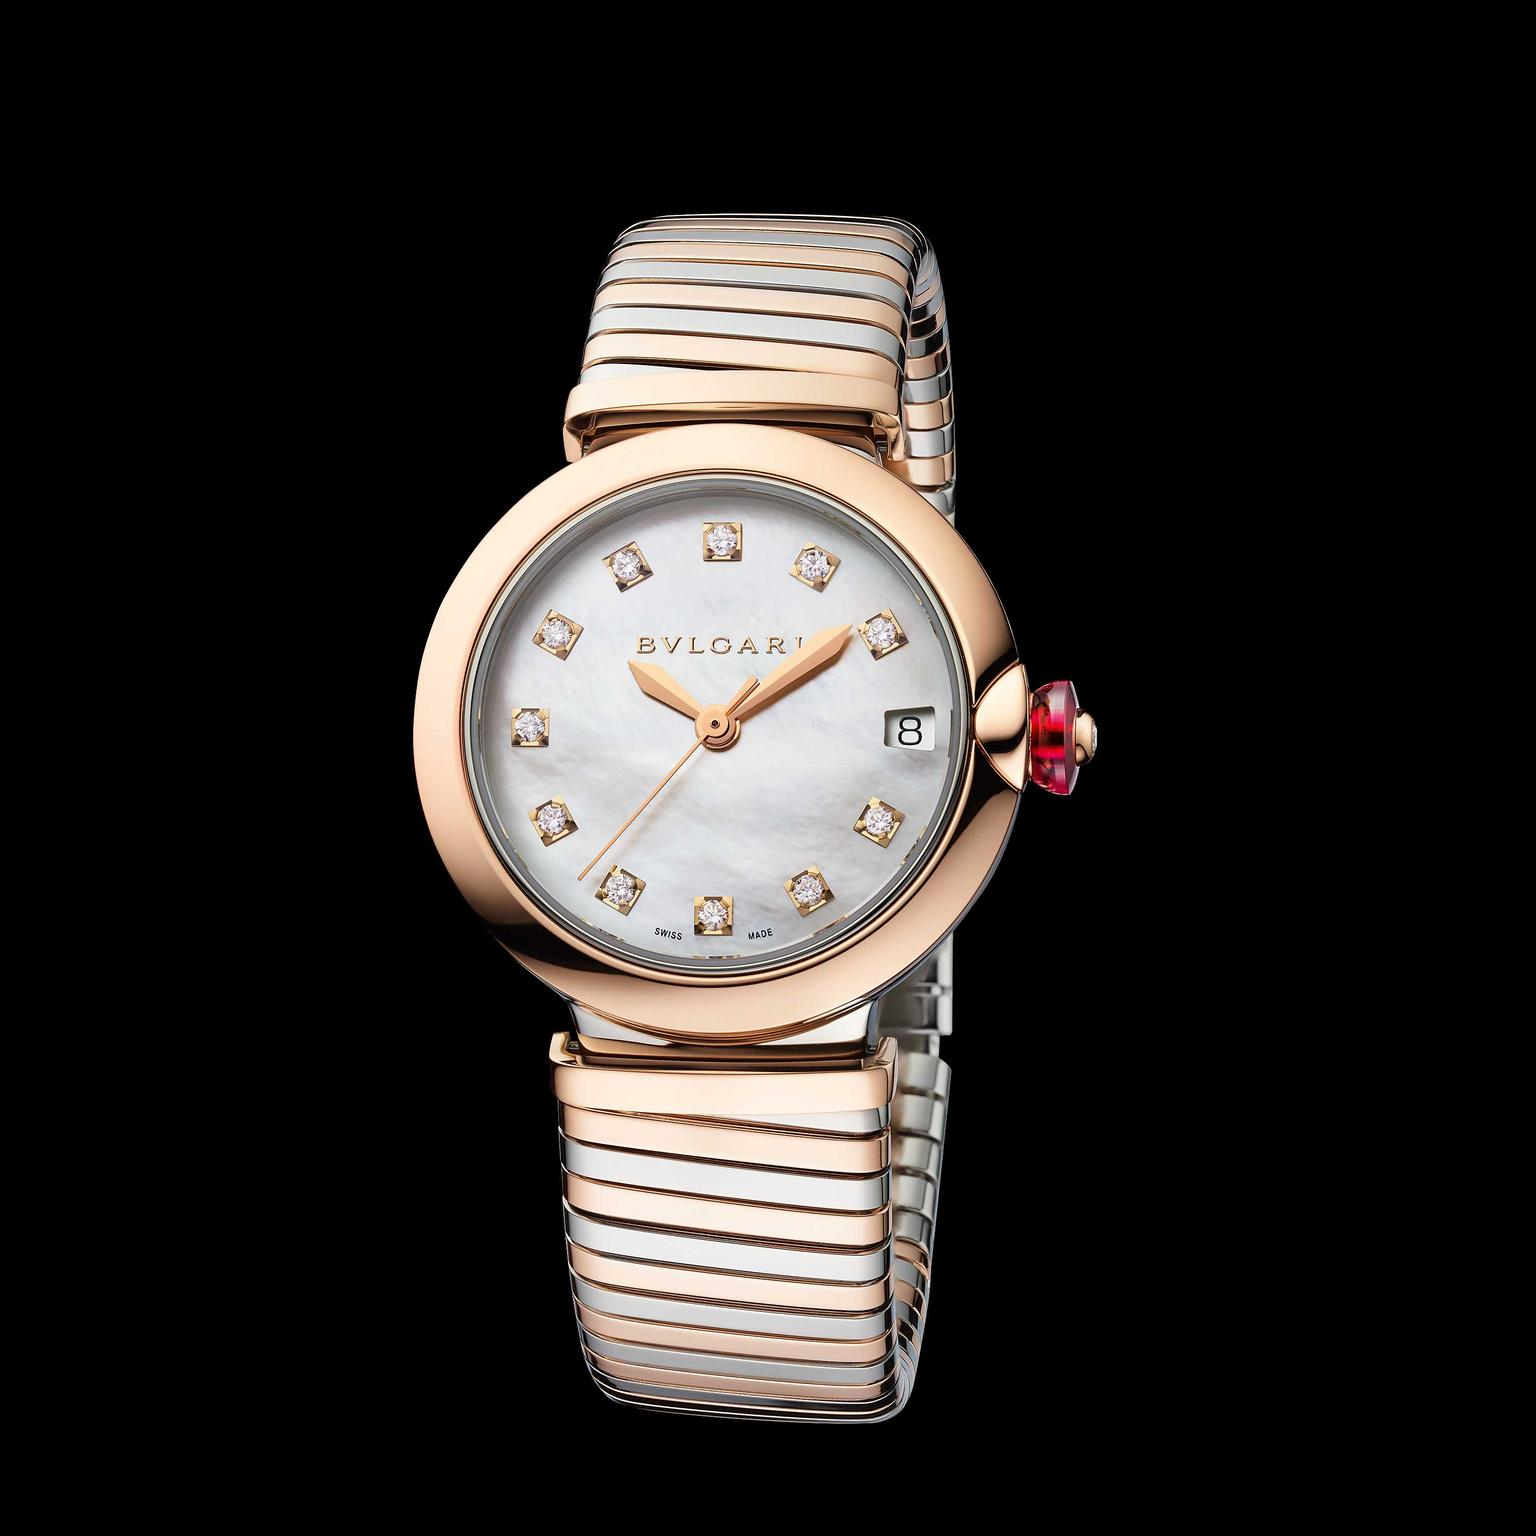 Bulgari Lvcea Tubogas 33mm rose gold and stainless steel women's watch 2018 Price: €10,600